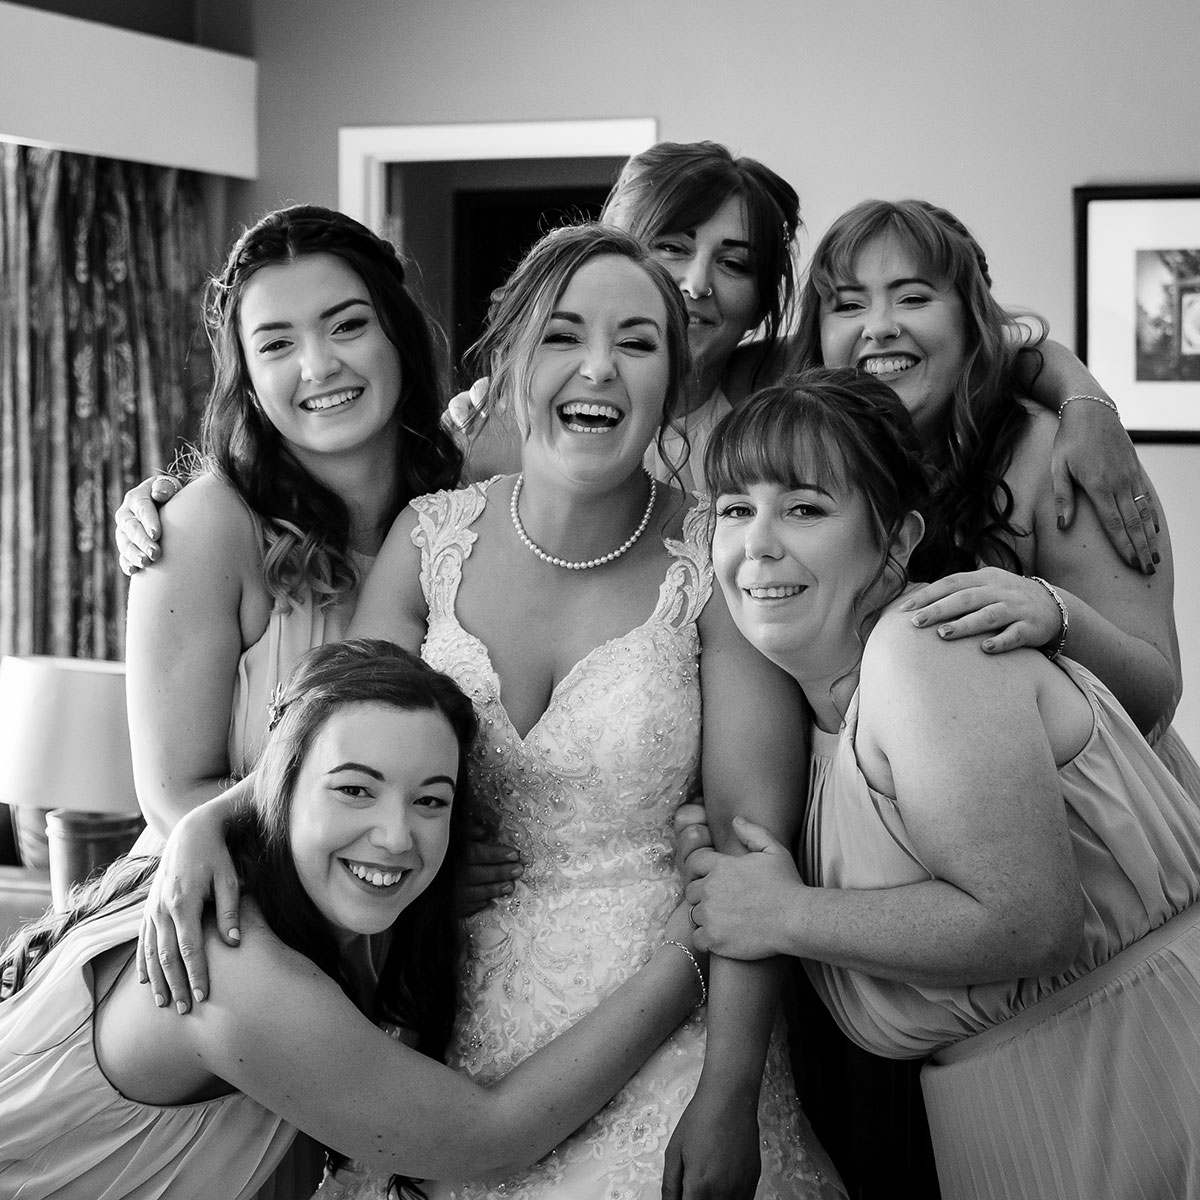 bride-and-bridesmaids-in-black-and-white